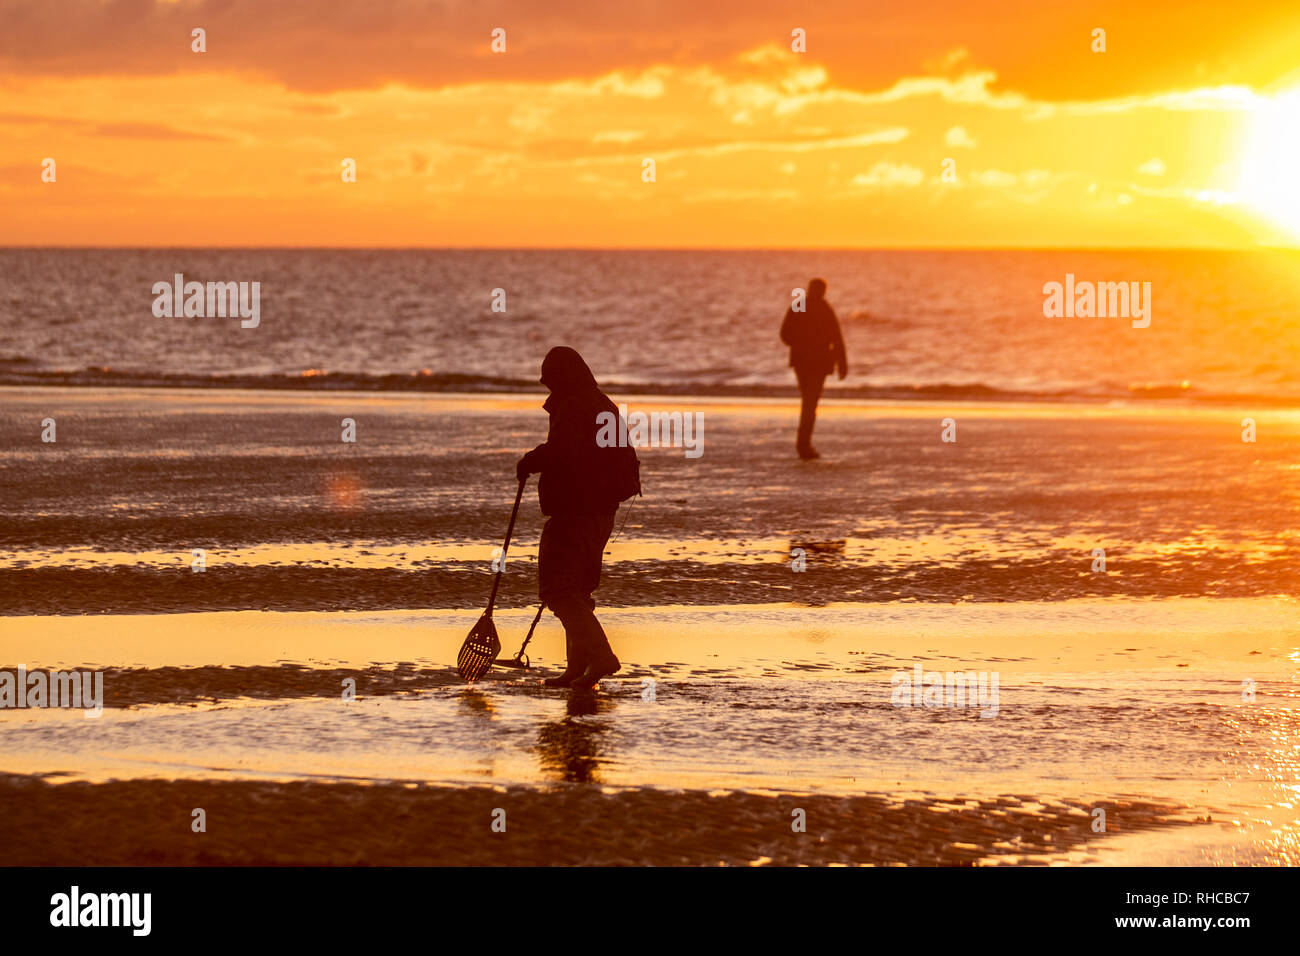 Blackpool, Lancashire. 1st Feb, 2019. UK Weather. Treasure hunting, detector, device, equipment, metal, treasure, ground, hobby, sensor, technology, electronic, find, hunt valuables  at sunset. Metal detectorists in action, scour the shoreline, beach, coast, searching for items of value disturbed by the recent strong tides. Credit: MediaWorldImages/Alamy Live News - Stock Image